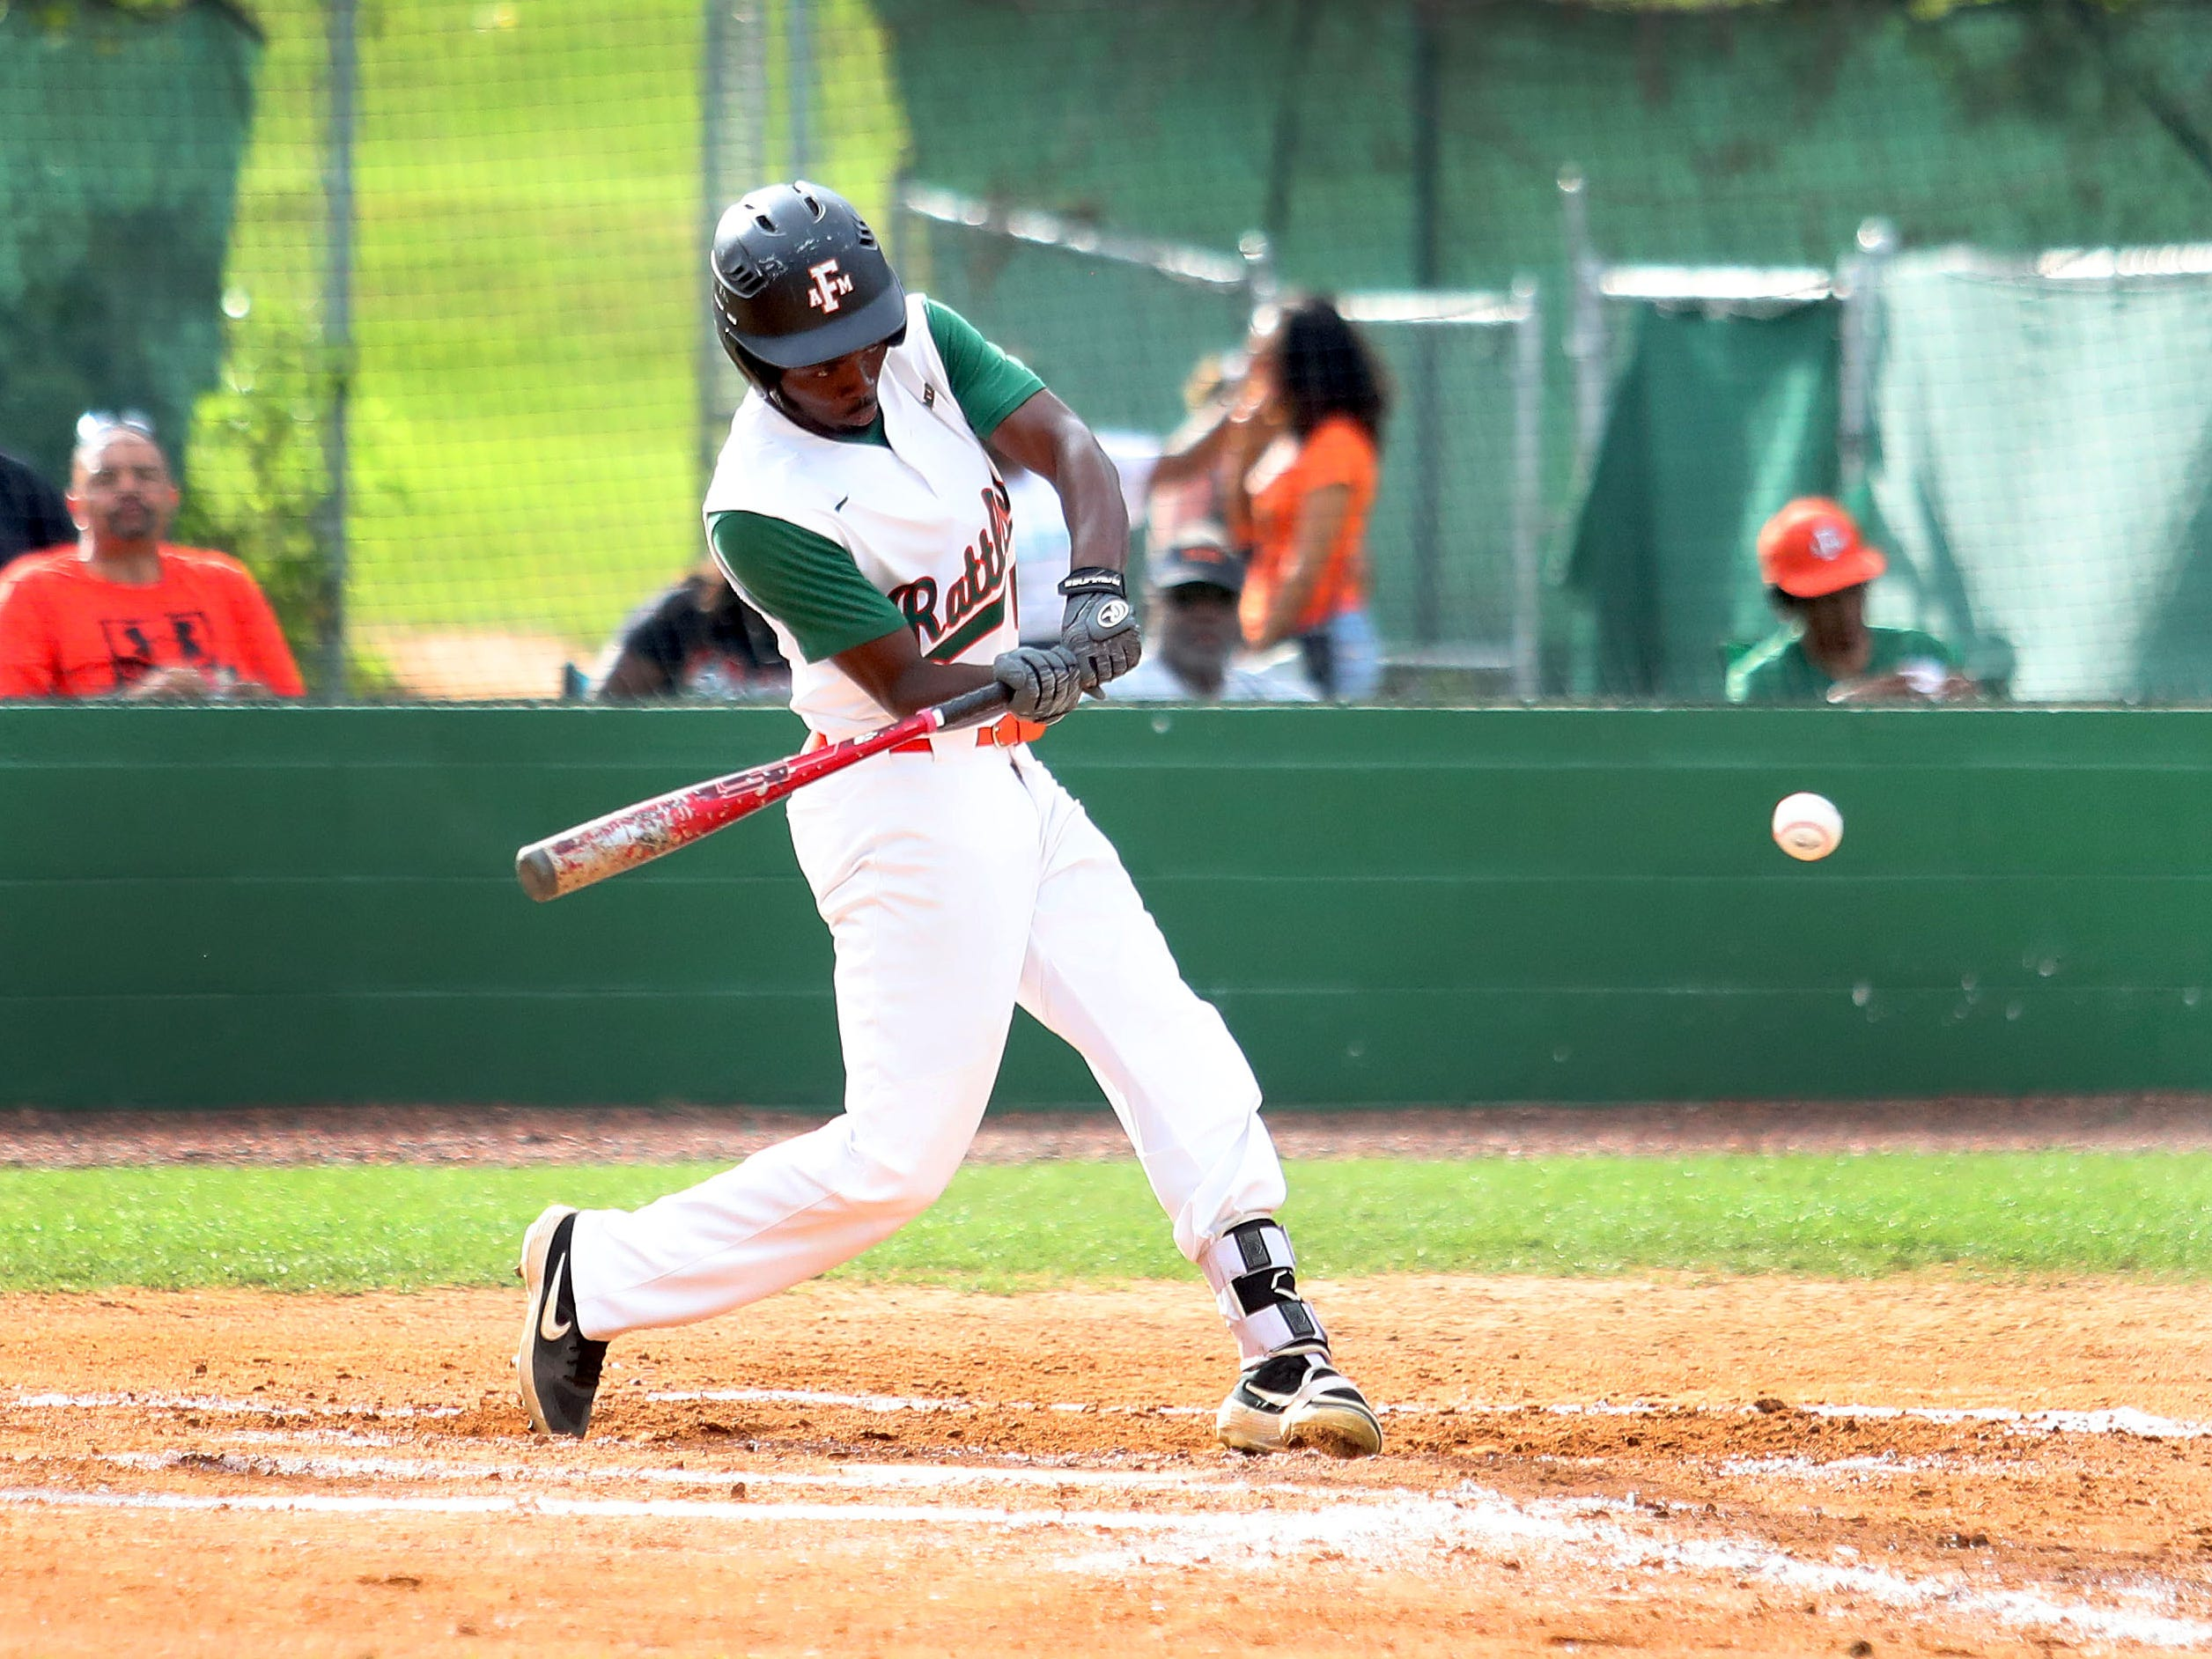 FAMU left fielder Seyjuan Lawrence went 1 for 3 with 2 RBI and a run scored in Game 2 of a doubleheader versus B-CU on Saturday, April 13, 2019.